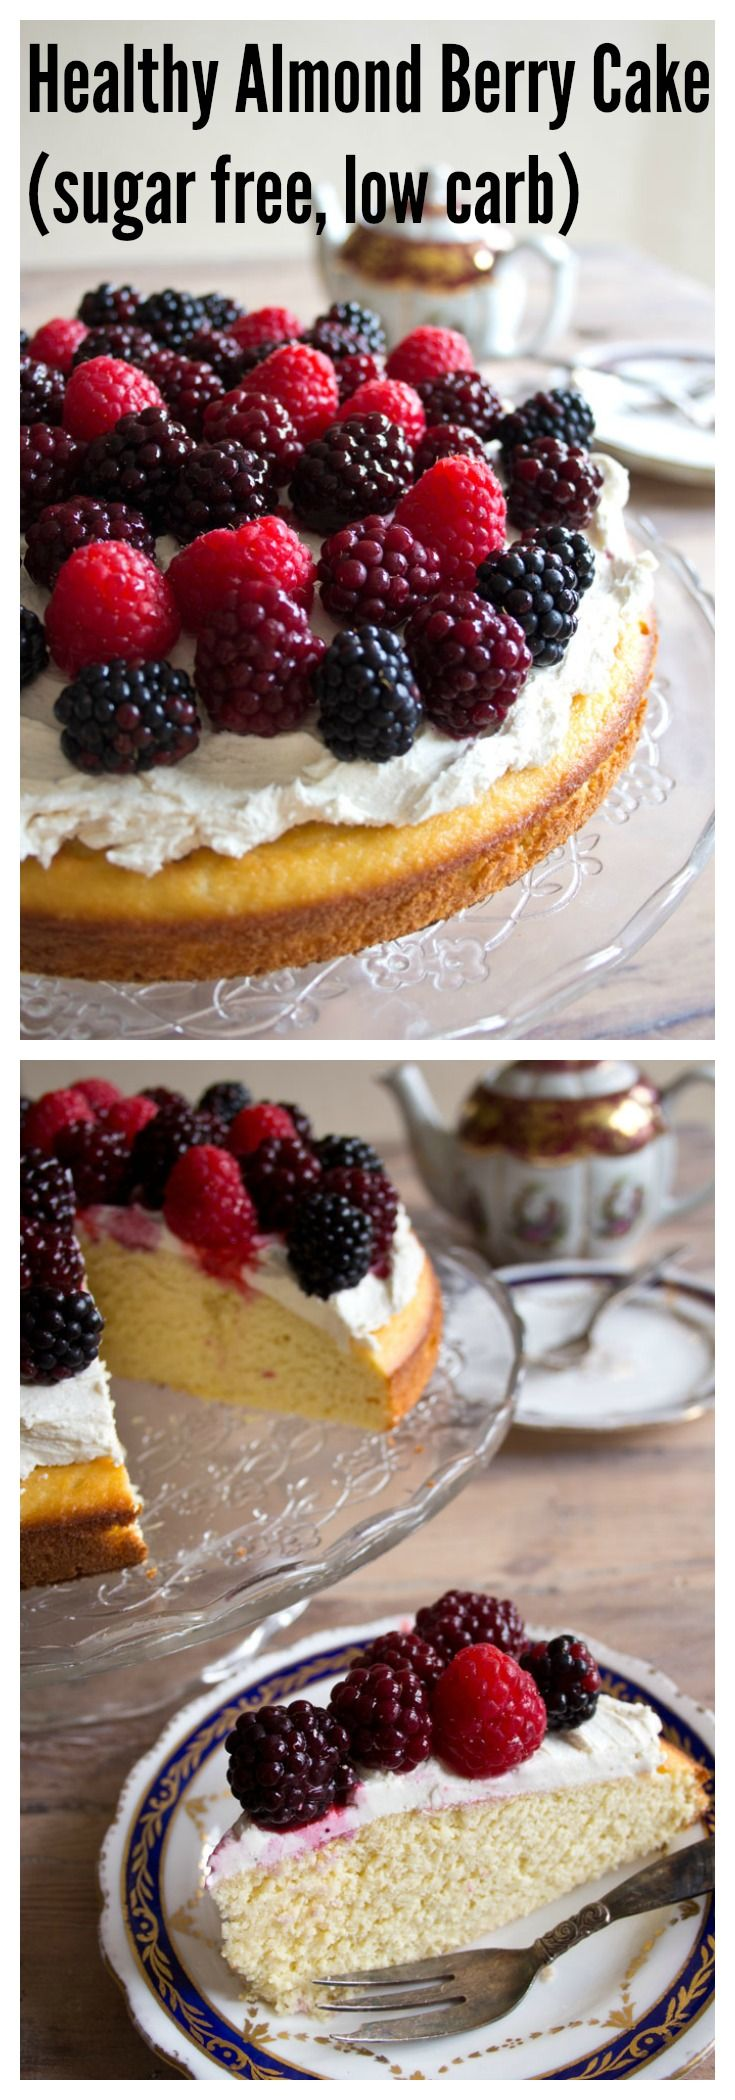 jewelry 925 silver wholesale An incredibly moist and healthy almond berry cake with creamy mascarpone icing  Sugar free  gluten free  low carb and so nutritious you could eat it for breakfast